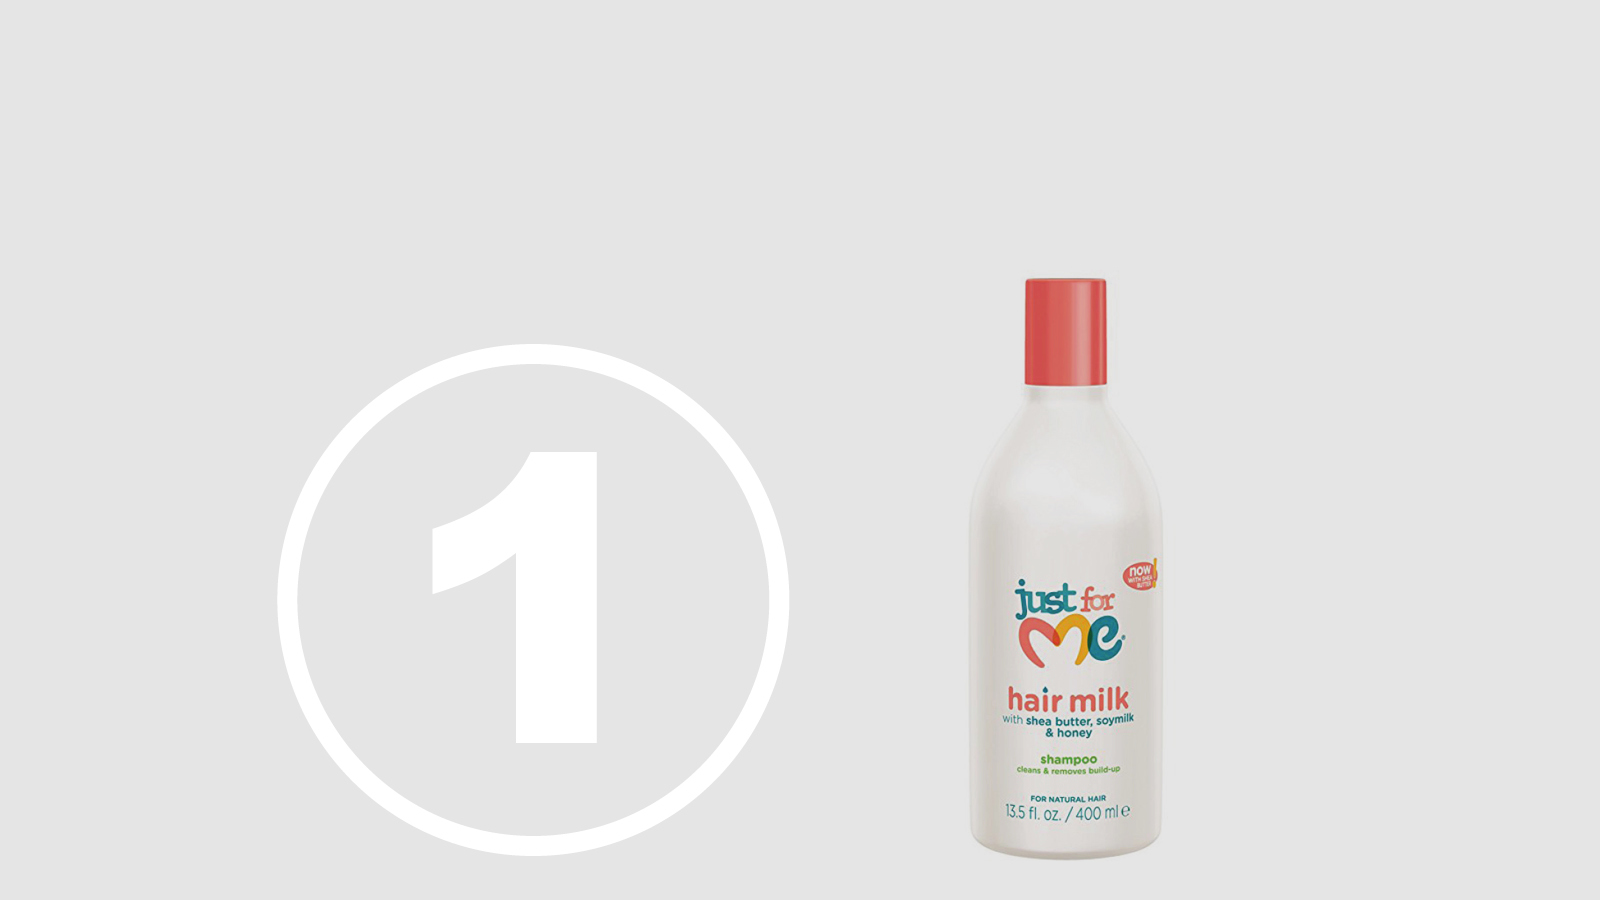 "<h5>Top Ten Most Hazardous Products</h5><h4>Just for Me Shampoo</h4><p>A children's shampoo, from a hair-relaxing kit marketed to kids of color by Strength of Nature.<br />We found <span style=""font-size:115%; background-color:rgba(0,0,0,0.7); font-wieght:bold;"">24 chemicals</span> chemicals linked to chronic health effects with <span style=""font-size:115%; background-color:rgba(0,0,0,0.7); font-wieght:bold;"">70.8% hidden in ""fragrance.""</span></p>"